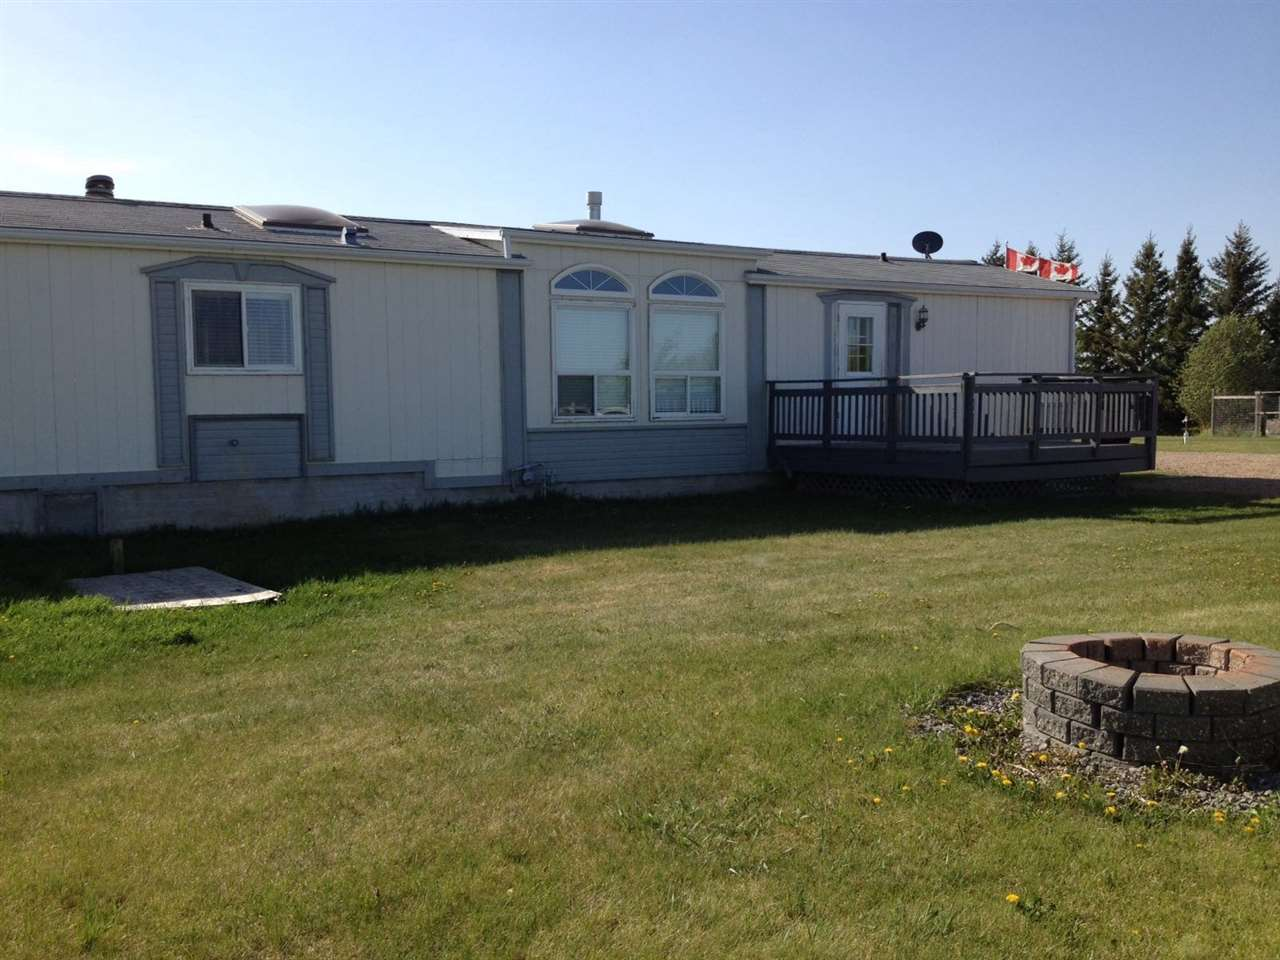 4.1 Acres situated in BrookWood Estates conveniently located 4 miles north of Vegreville on pavement. Featuring a 1996 mobile home with a warm and welcoming open floor plan of modern design; nice family home, very well maintained. Containing 3 bedrooms, 2 bathrooms, sunken living room with fireplace, addition with large office area and flex room, 2 decks and 3 skylights. Upgraded with new paint, window coverings, new carpet in the living room and master bedroom, water softener and R/O water system; plus, all appliances are included. Outbuildings include a double detached 28x30 heated garage/shop with a large concrete parking pad and an attached lean-to for additional storage and a 16x14 garden shed. Affordable family acreage with a nice backyard and firepit backing onto the open countryside and fenced for horses. GST may be applicable.